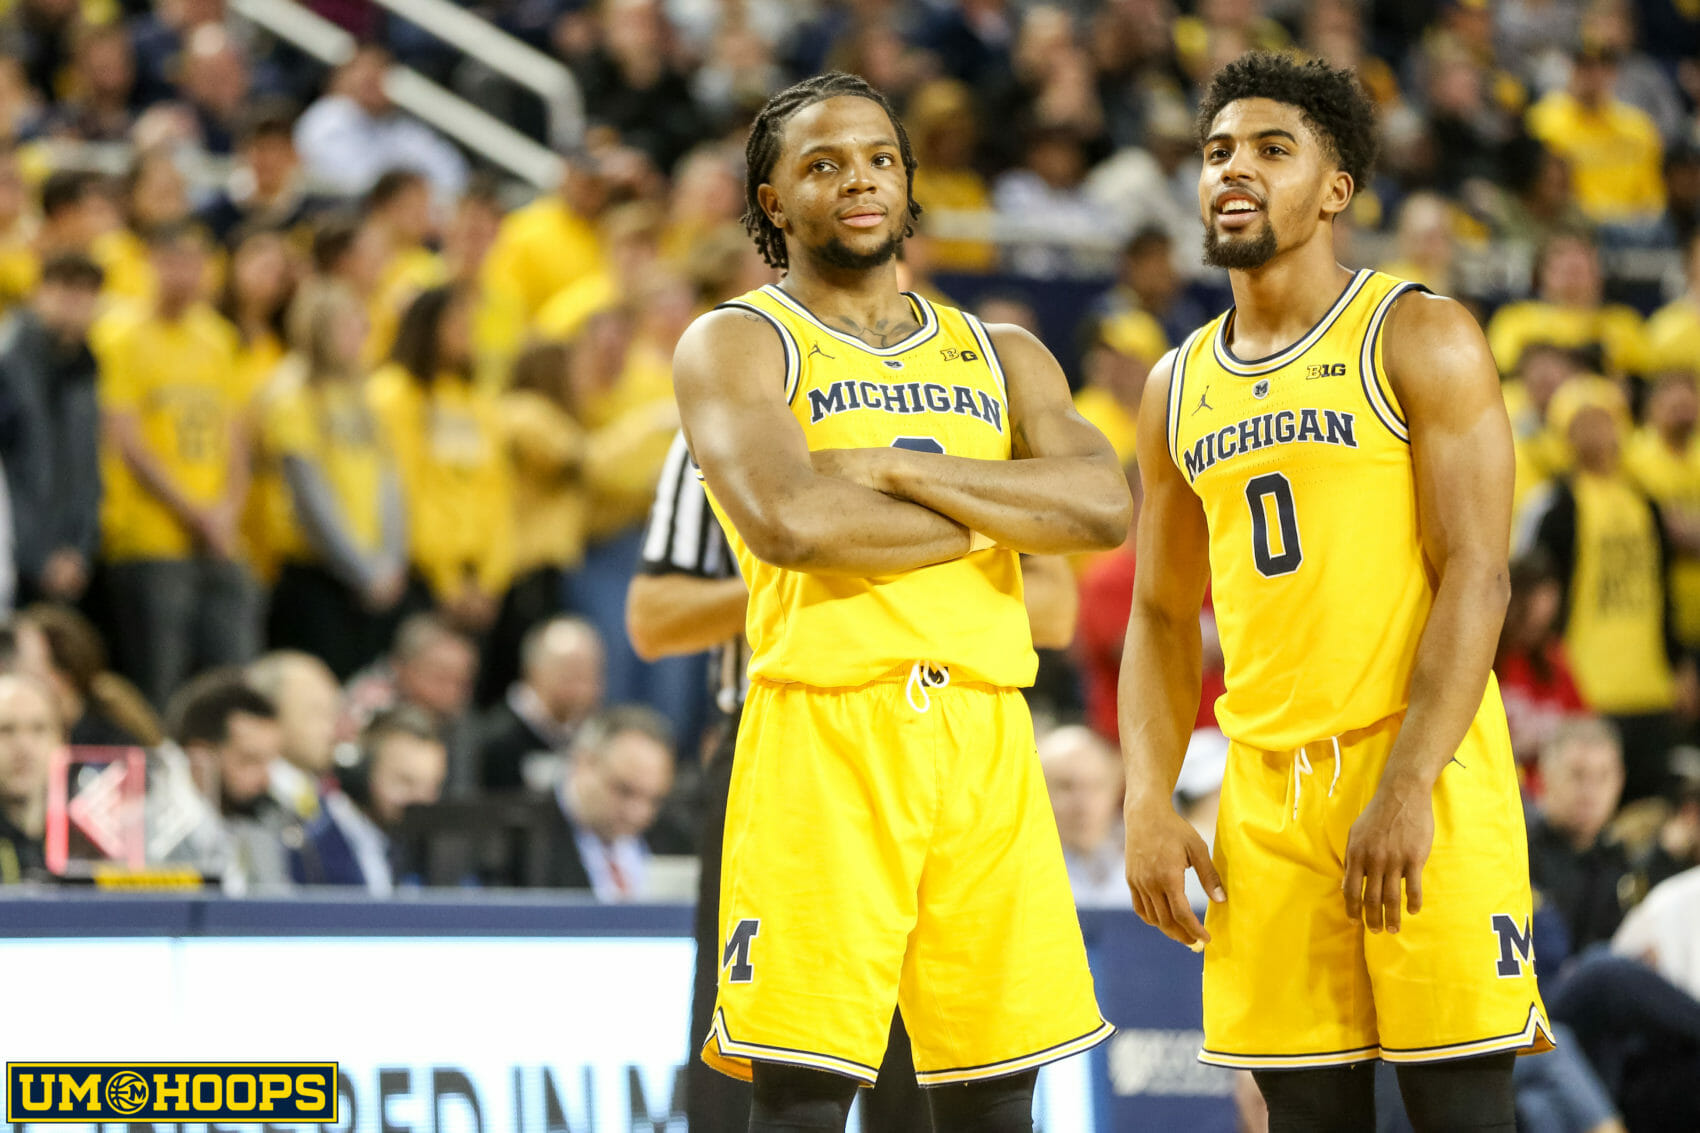 2019 20 Michigan Wolverines Basketball Schedule